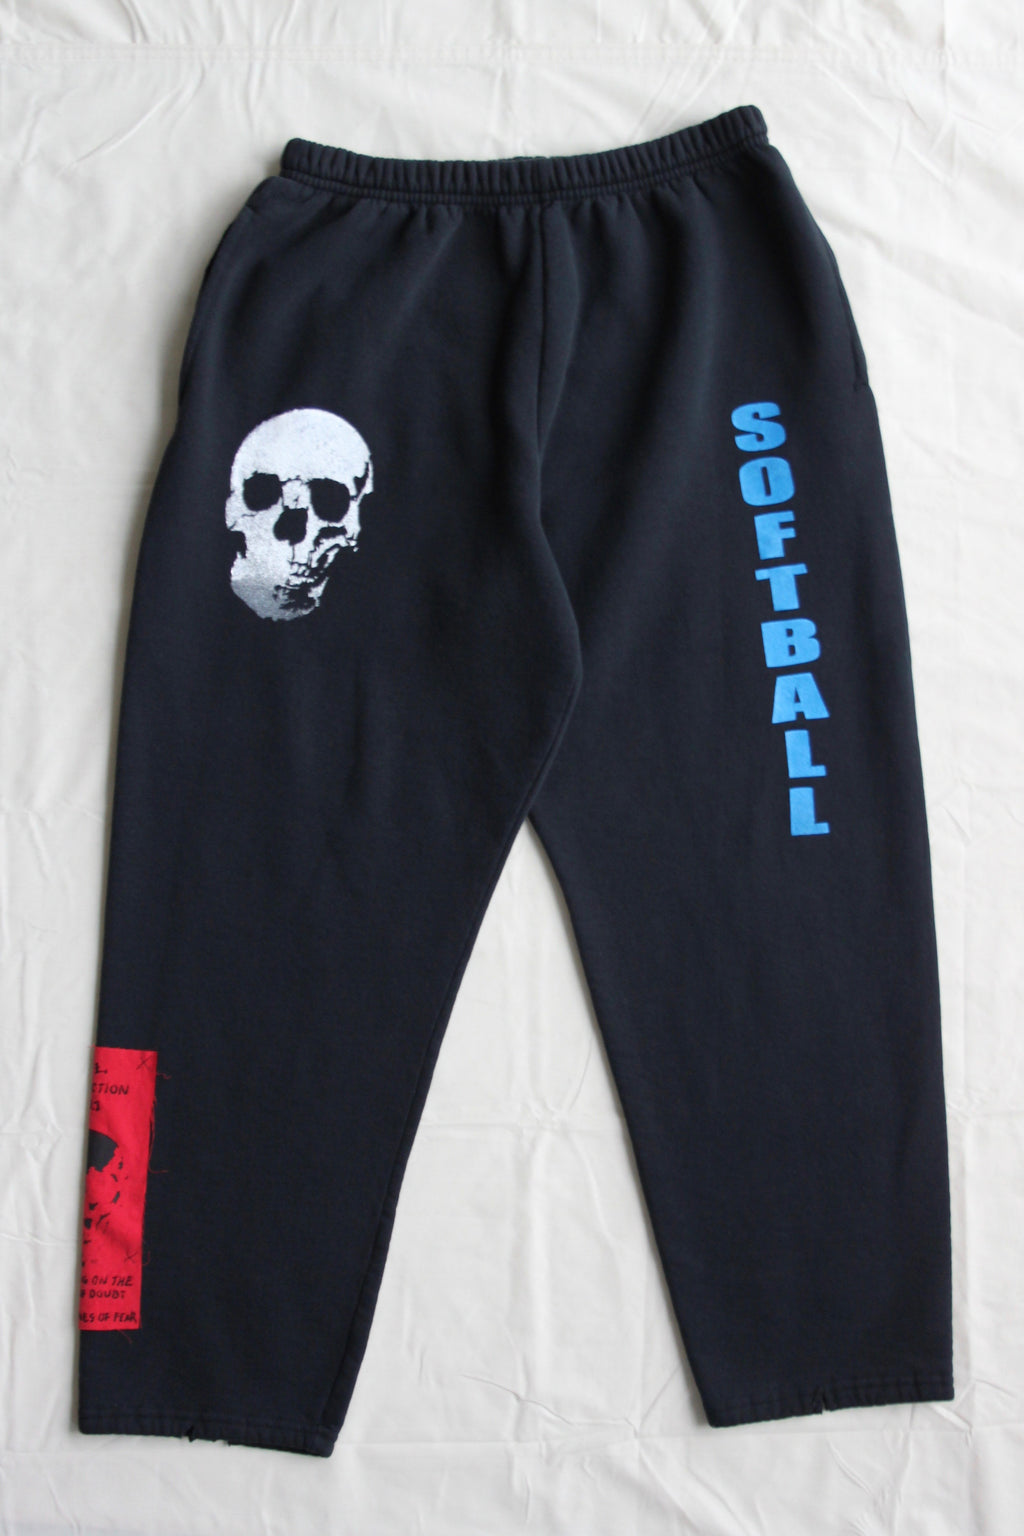 WSL Customized Vintage Softball Sweatpants